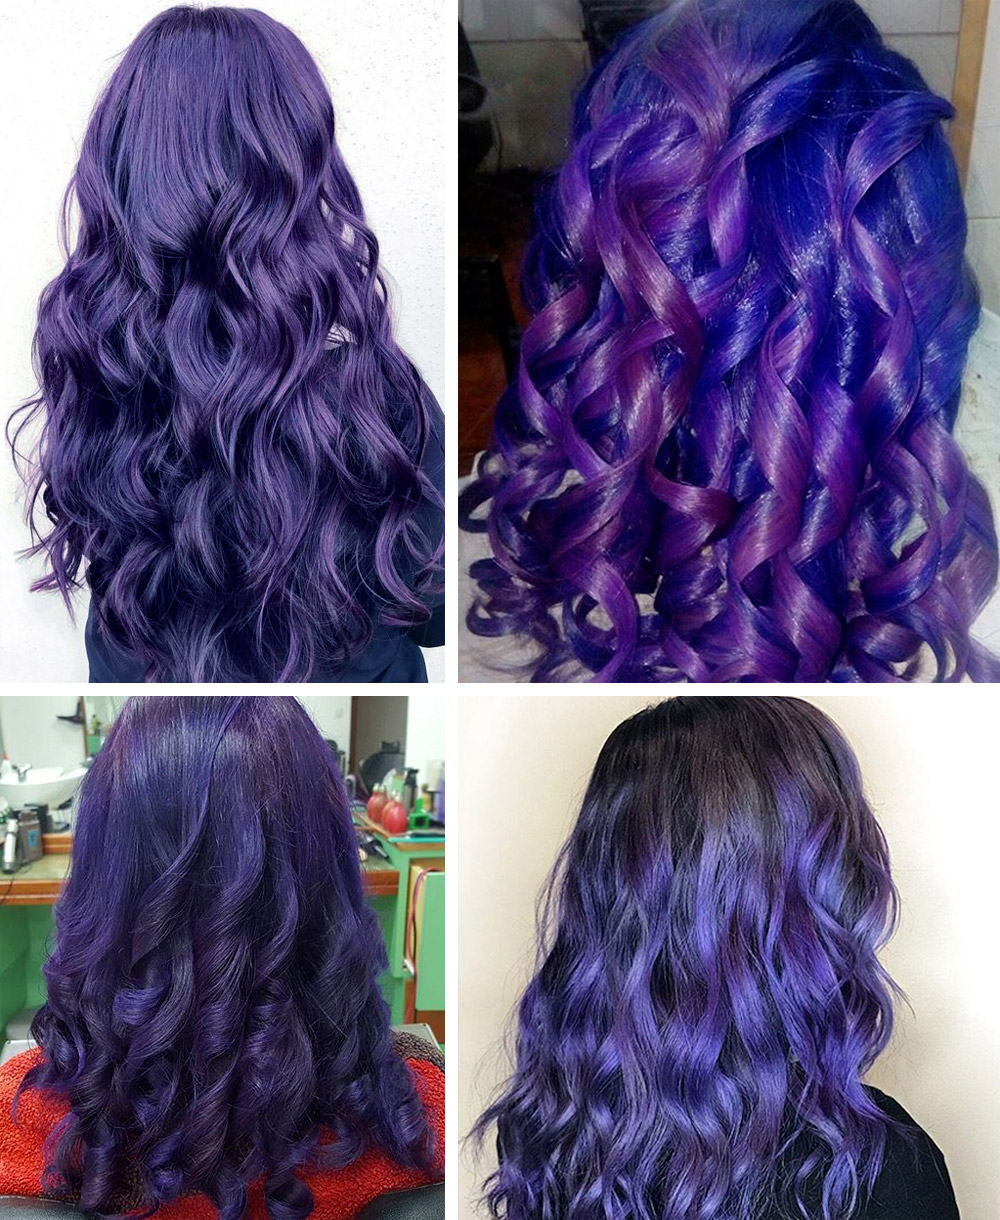 Ultra Violet curly hair